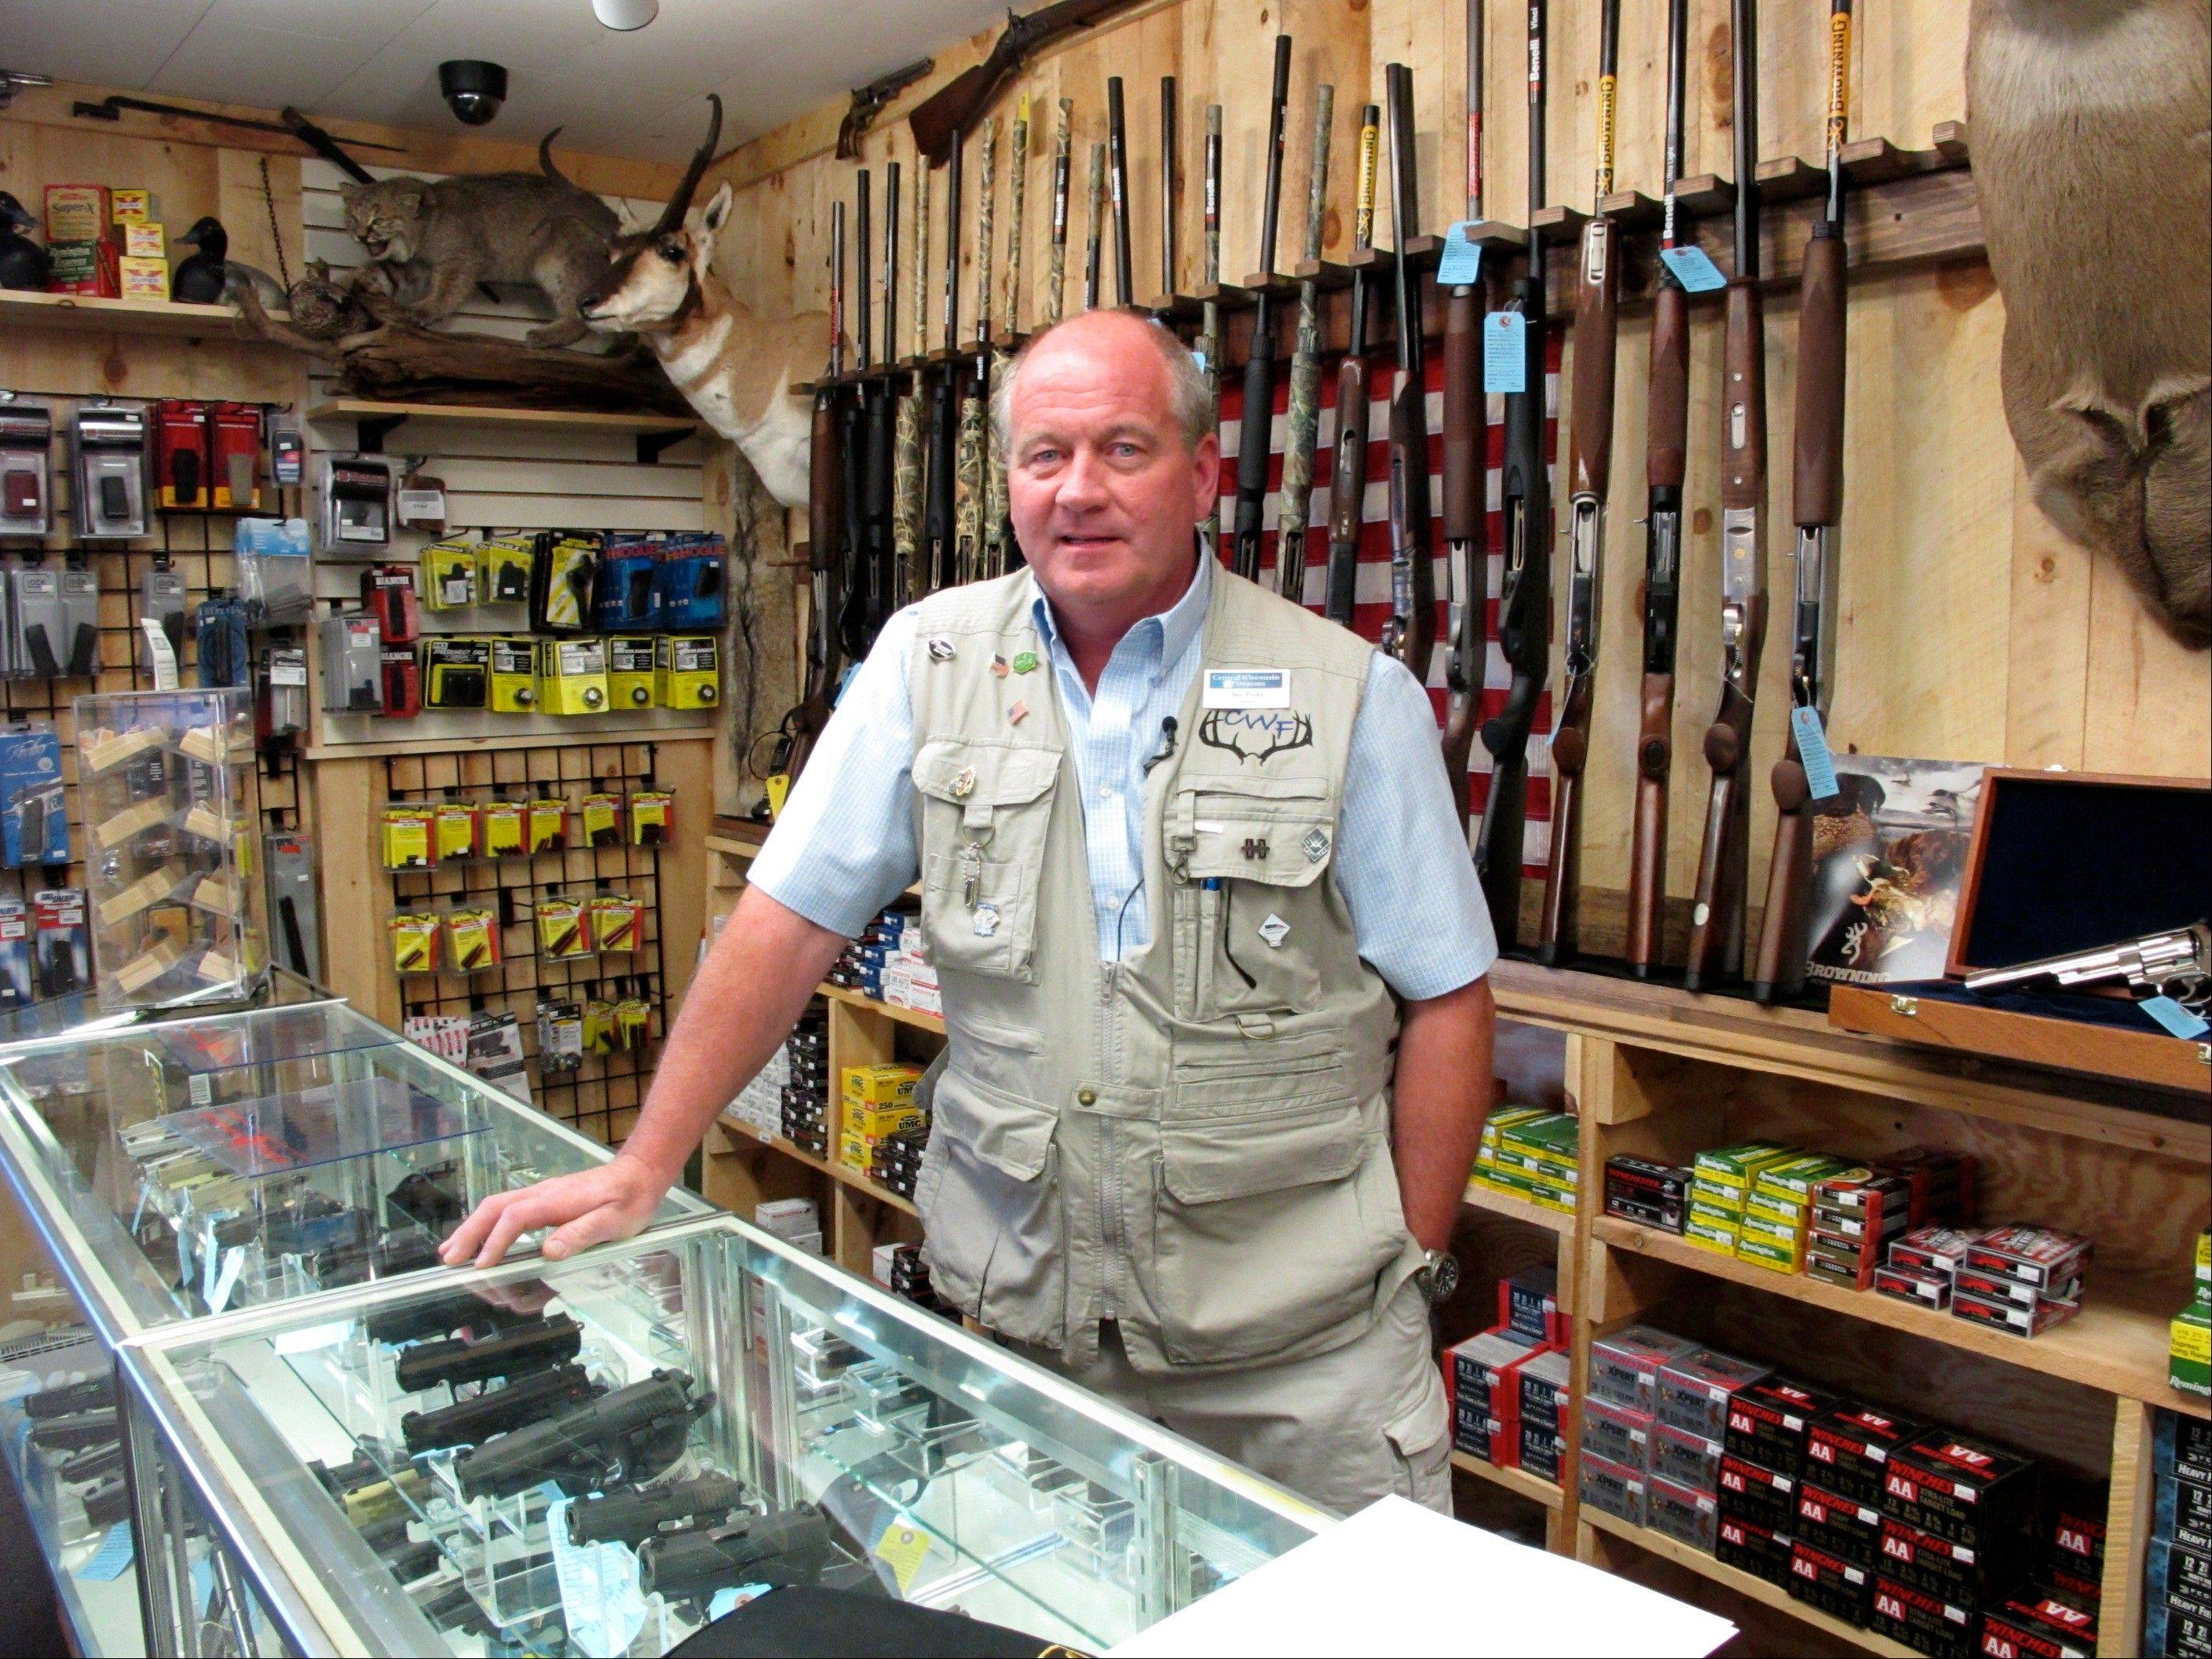 Central Wisconsin Firearms owner Frederick Prehn in his store last August in Wausau, Wis. He says he's had to expand his business to the new location because of increased gun sales.